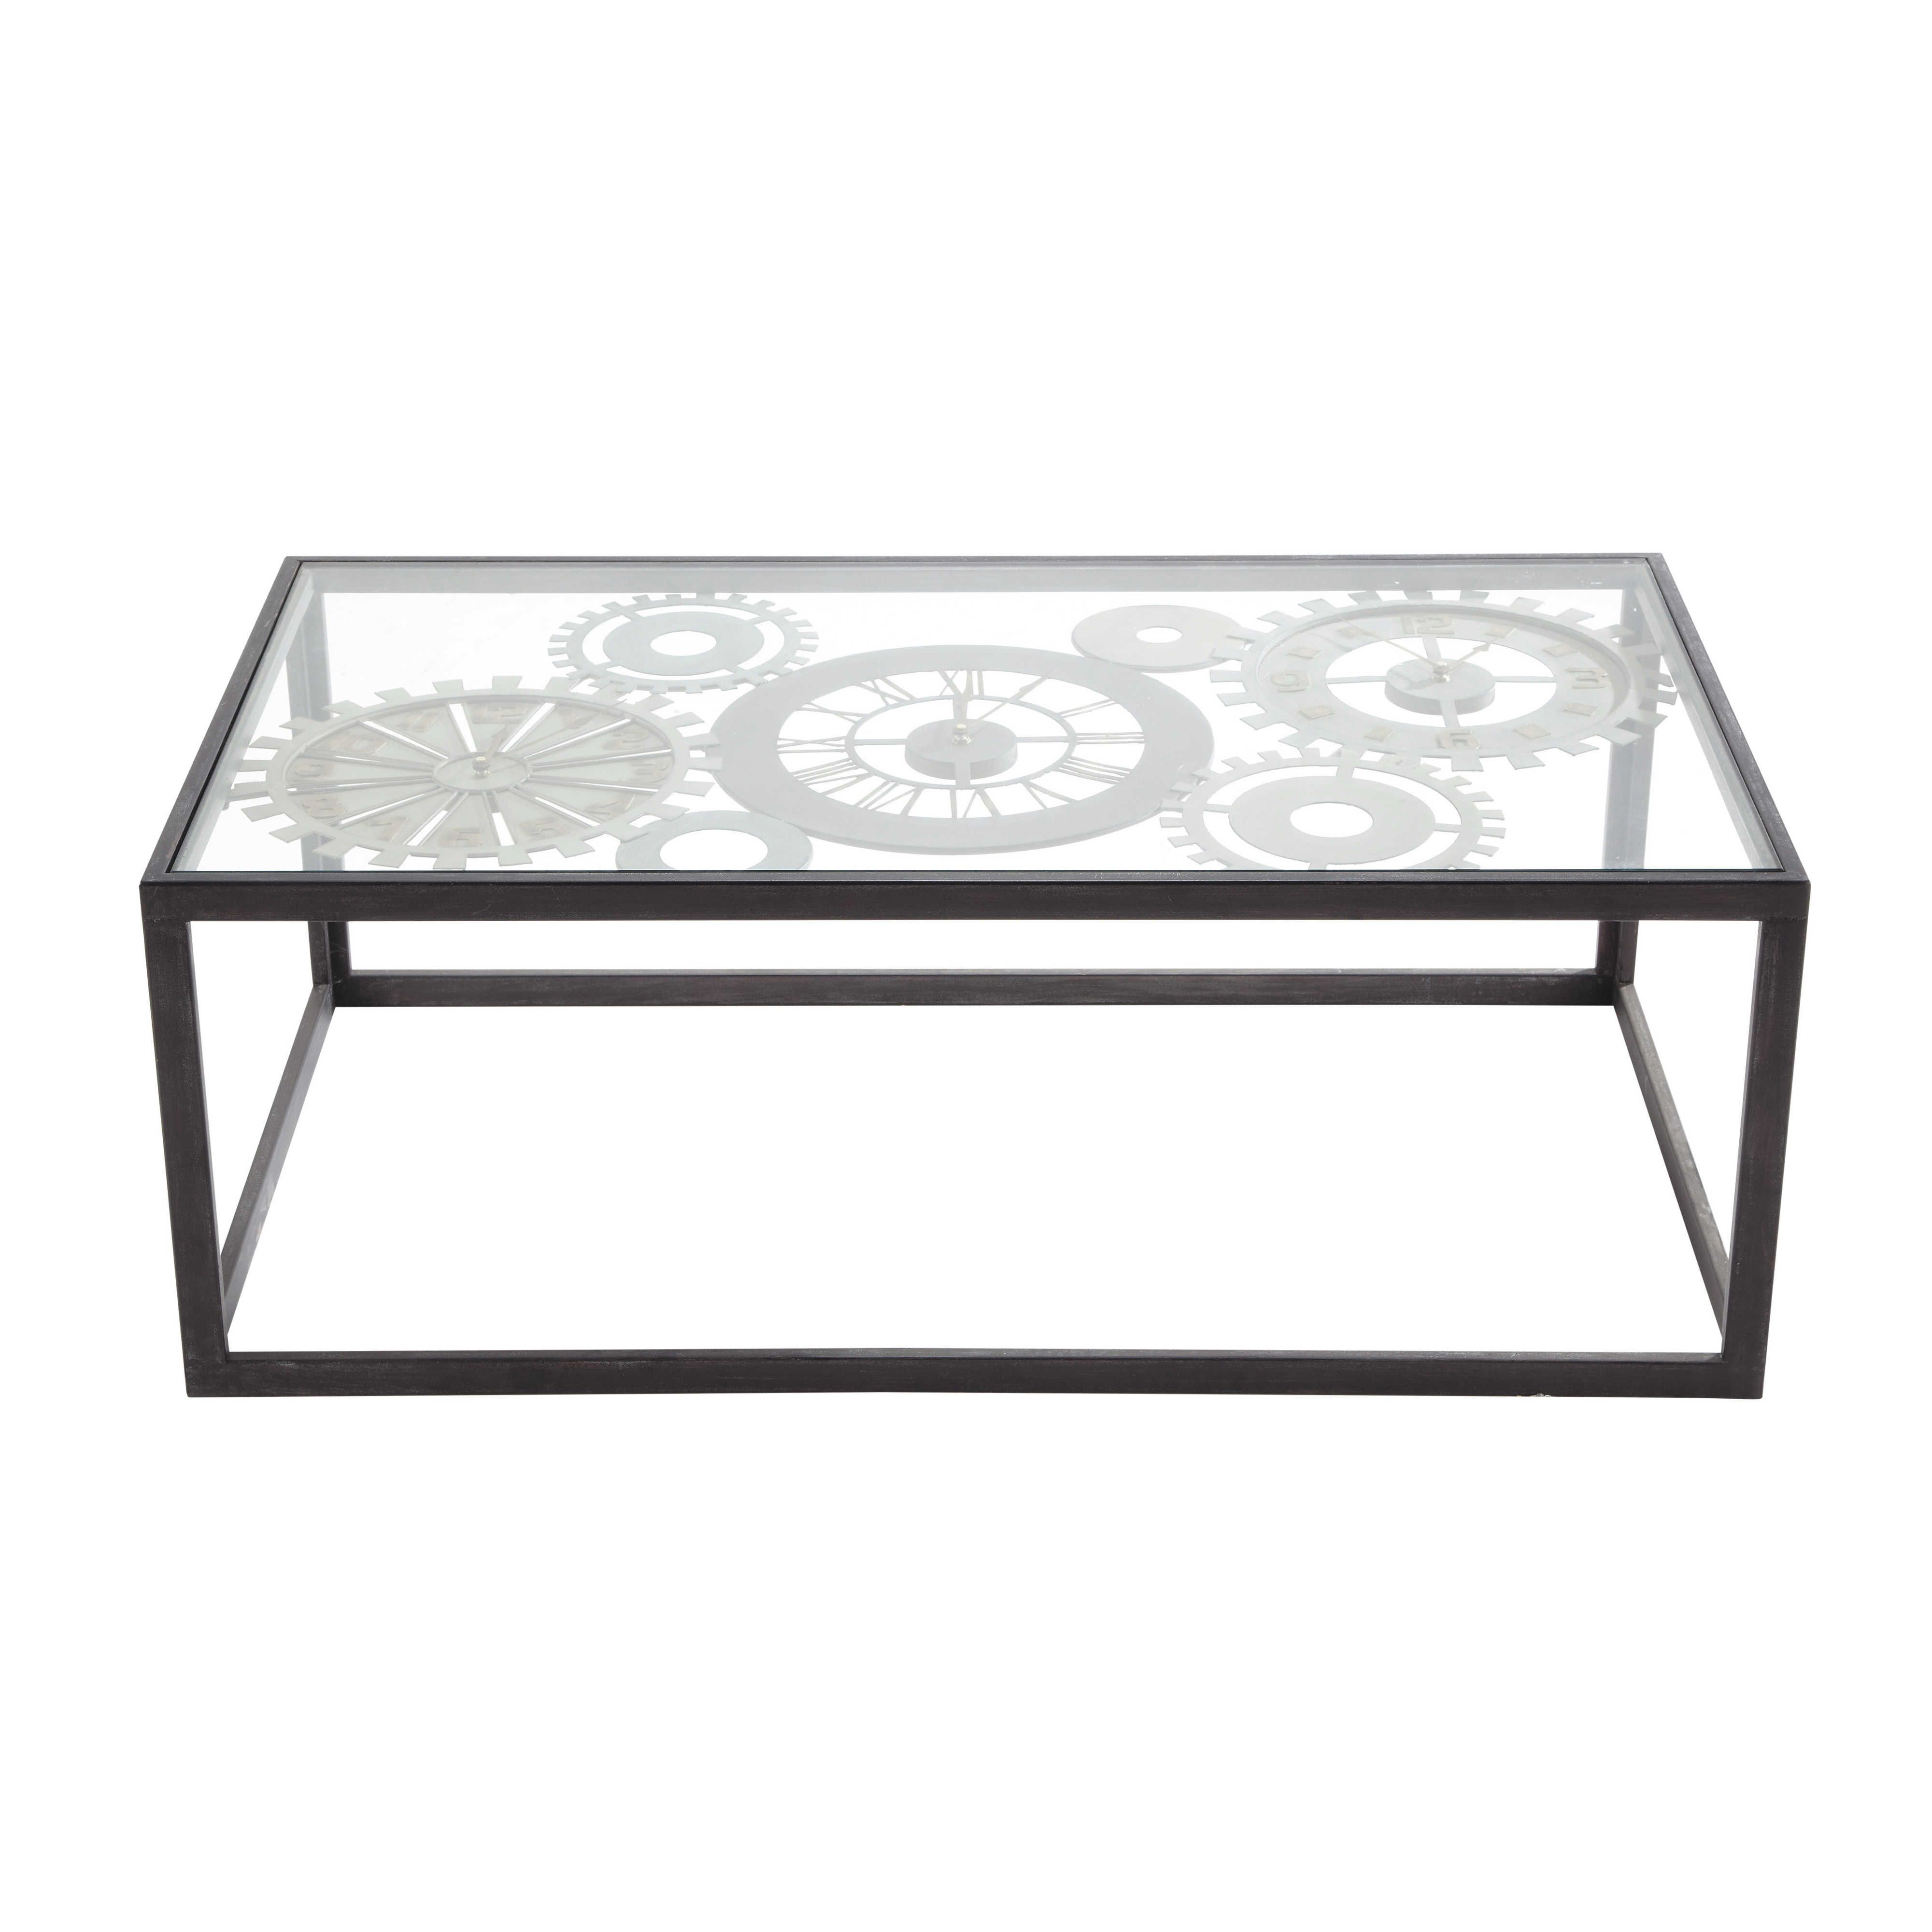 Metal And Tempered Glass Coffee Table With 3 Clocks W 110cm Maisons Du Monde Table Basse Industrielle Table Basse Table Basse Verre